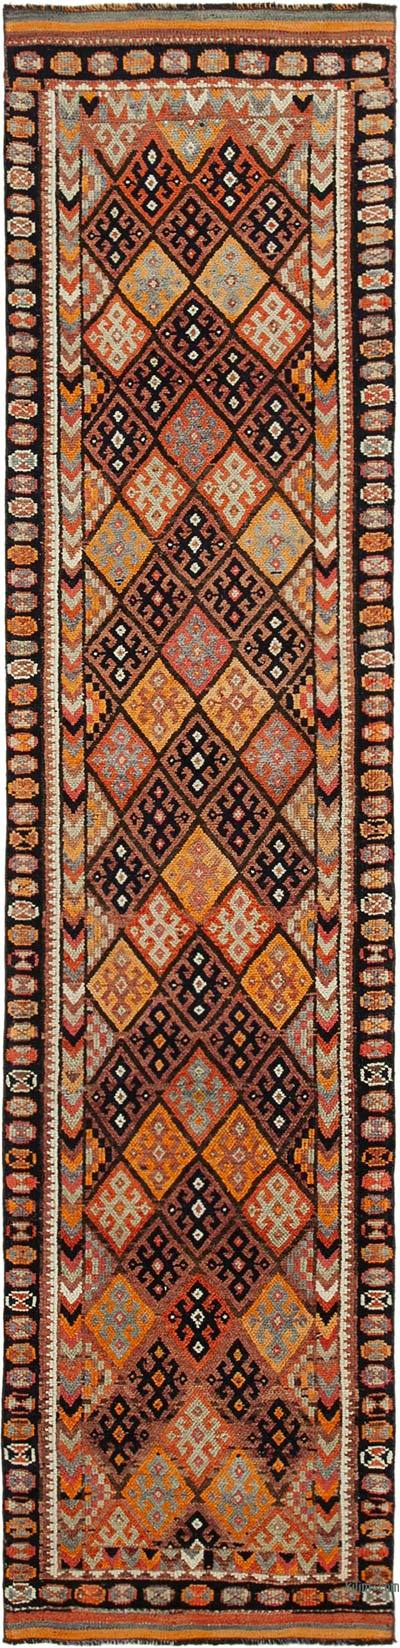 "Vintage Turkish Runner Rug - 2' 8"" x 11' 3"" (32 in. x 135 in.)"